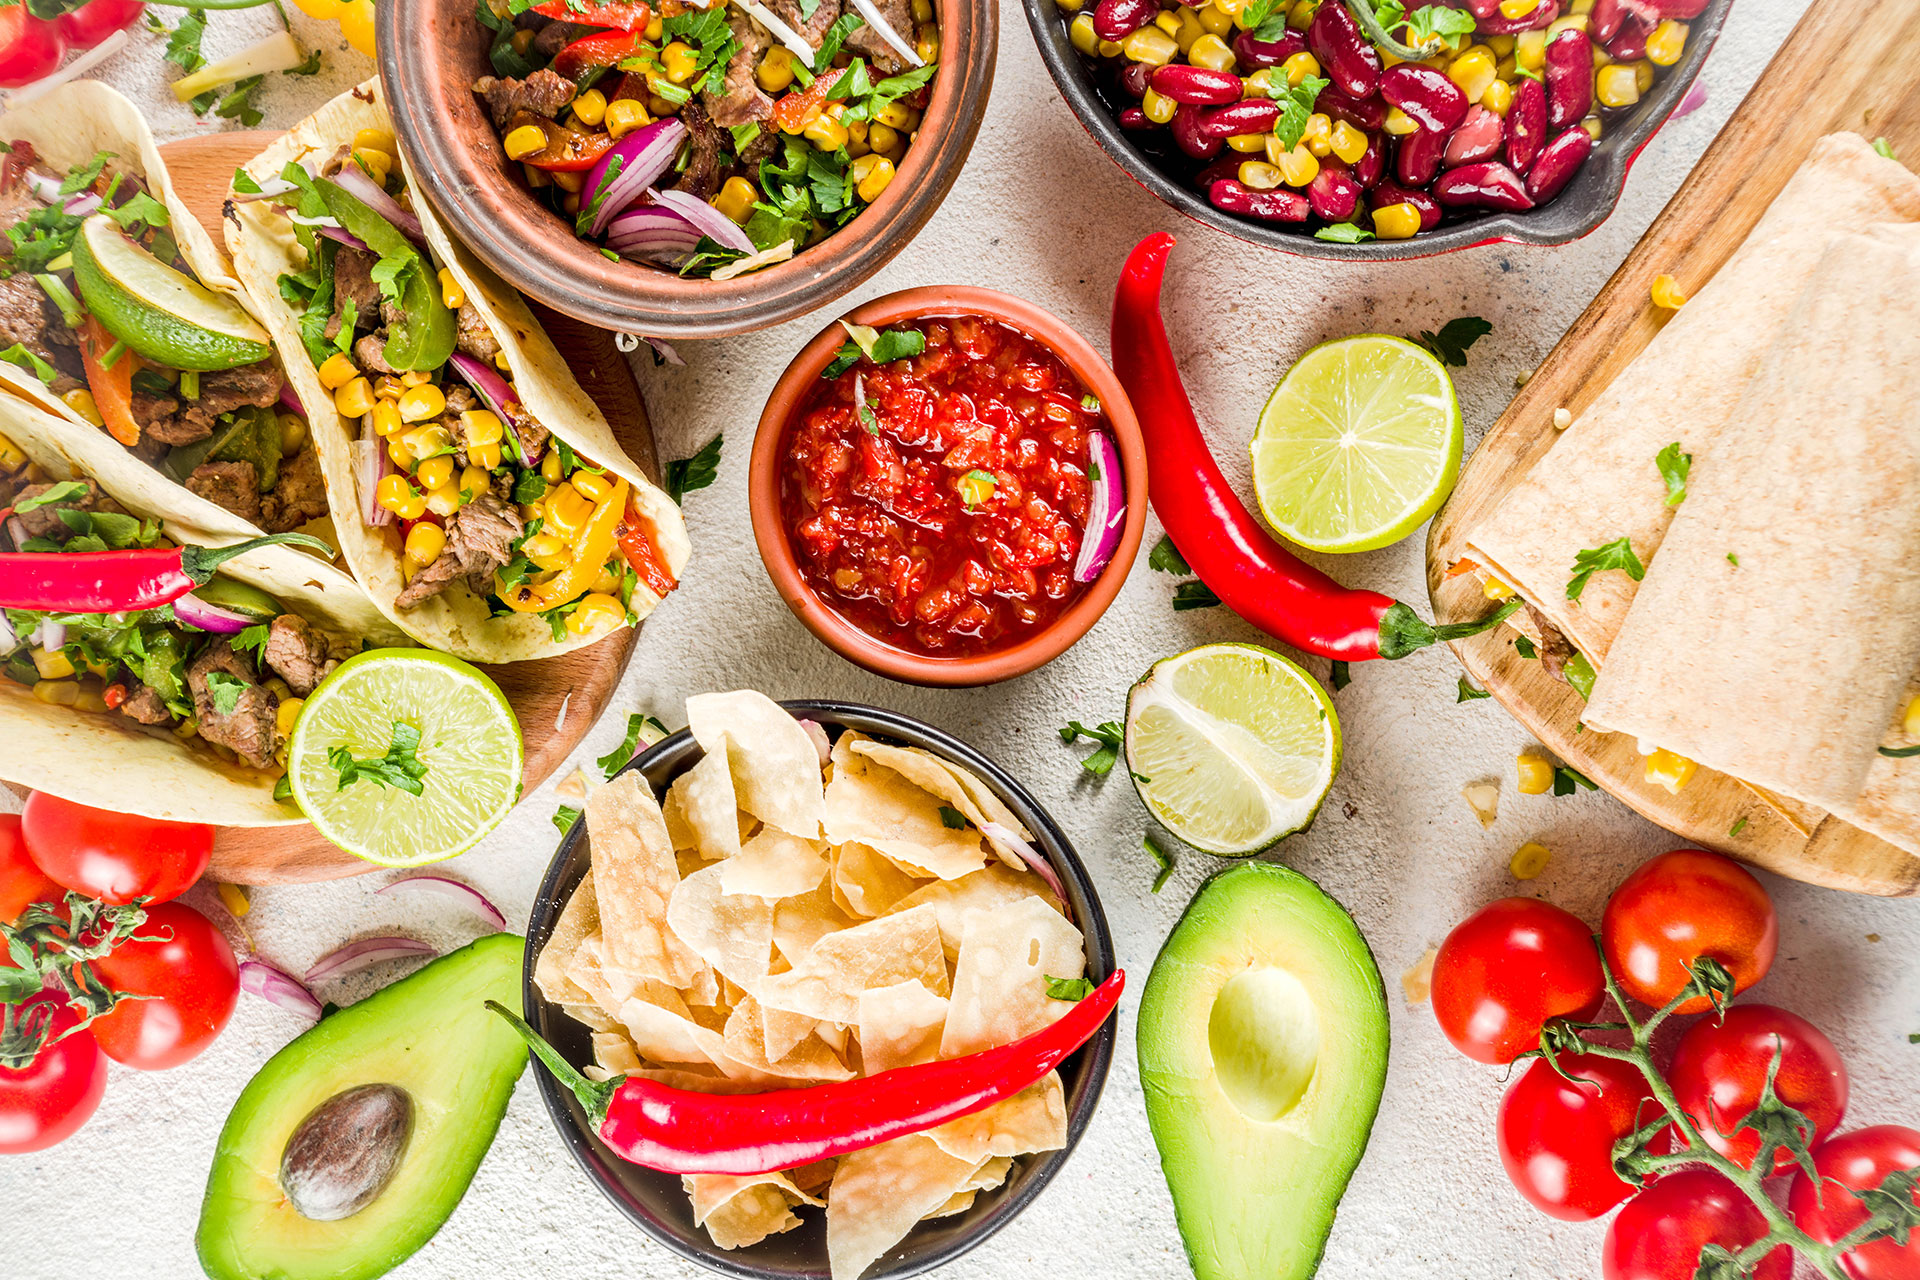 Colorful Mexican food including tacos, tortilla chips, salsa, avocados, limes and other produce laid out on a table.